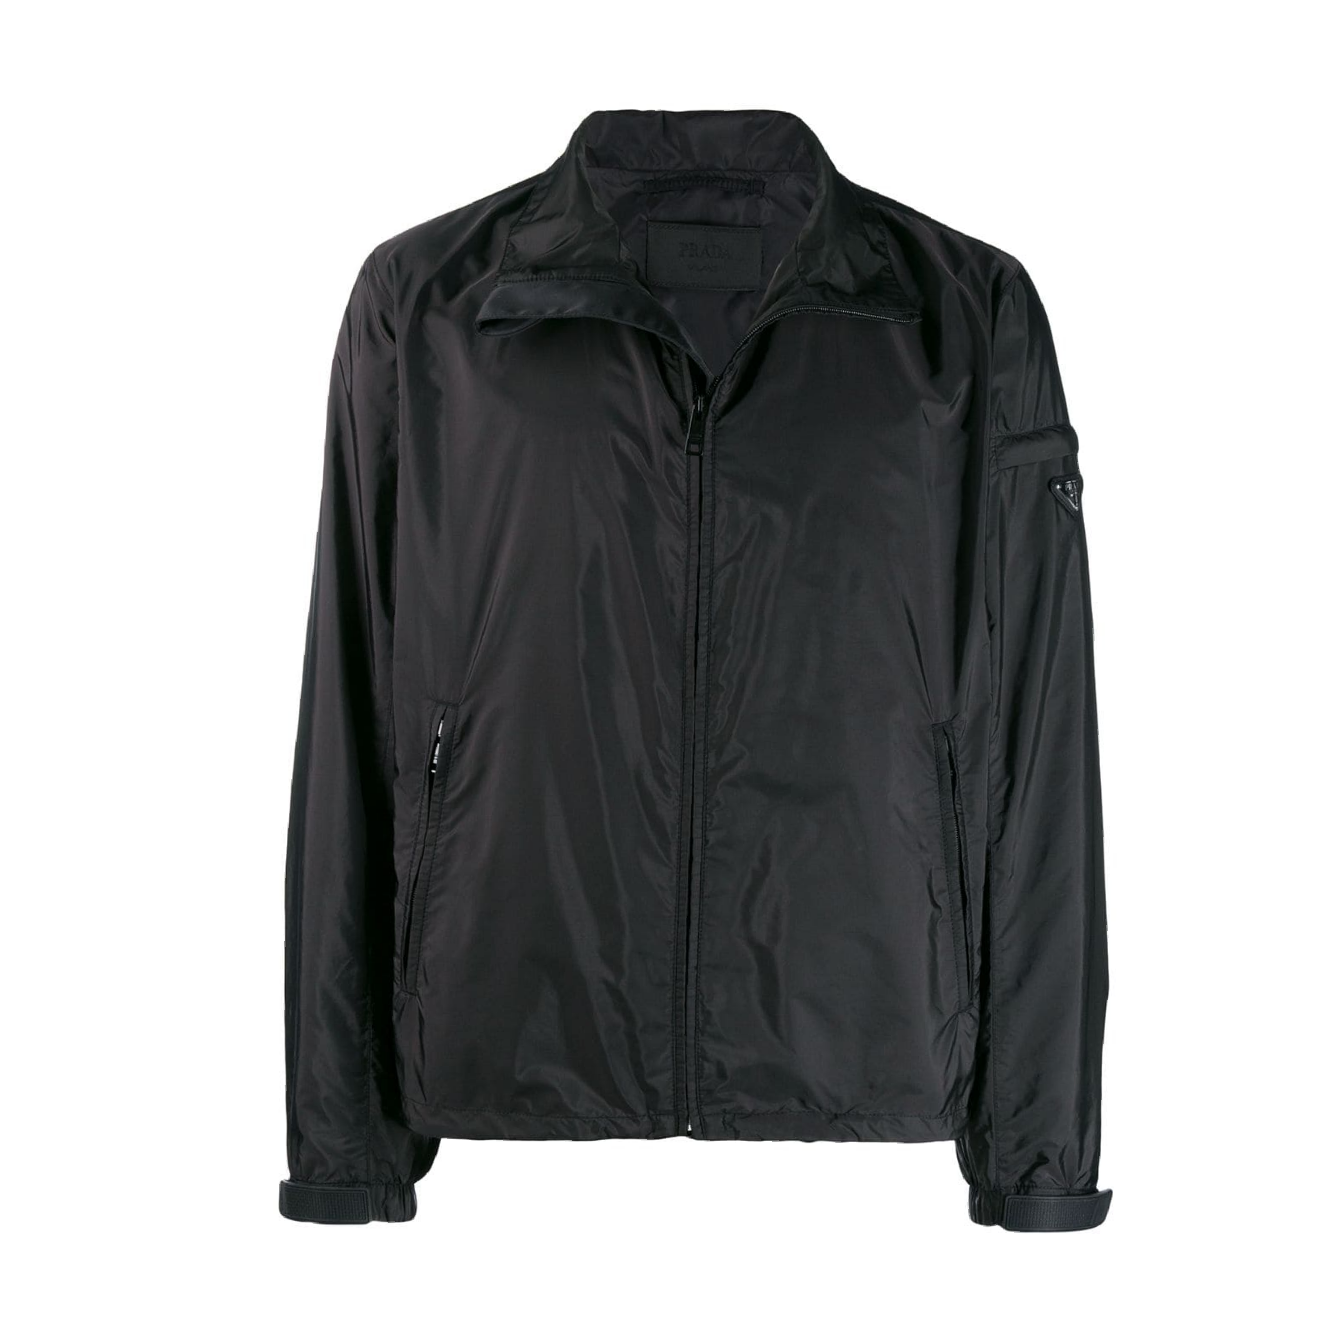 Prada Nylon Windbreaker Jacket - Black